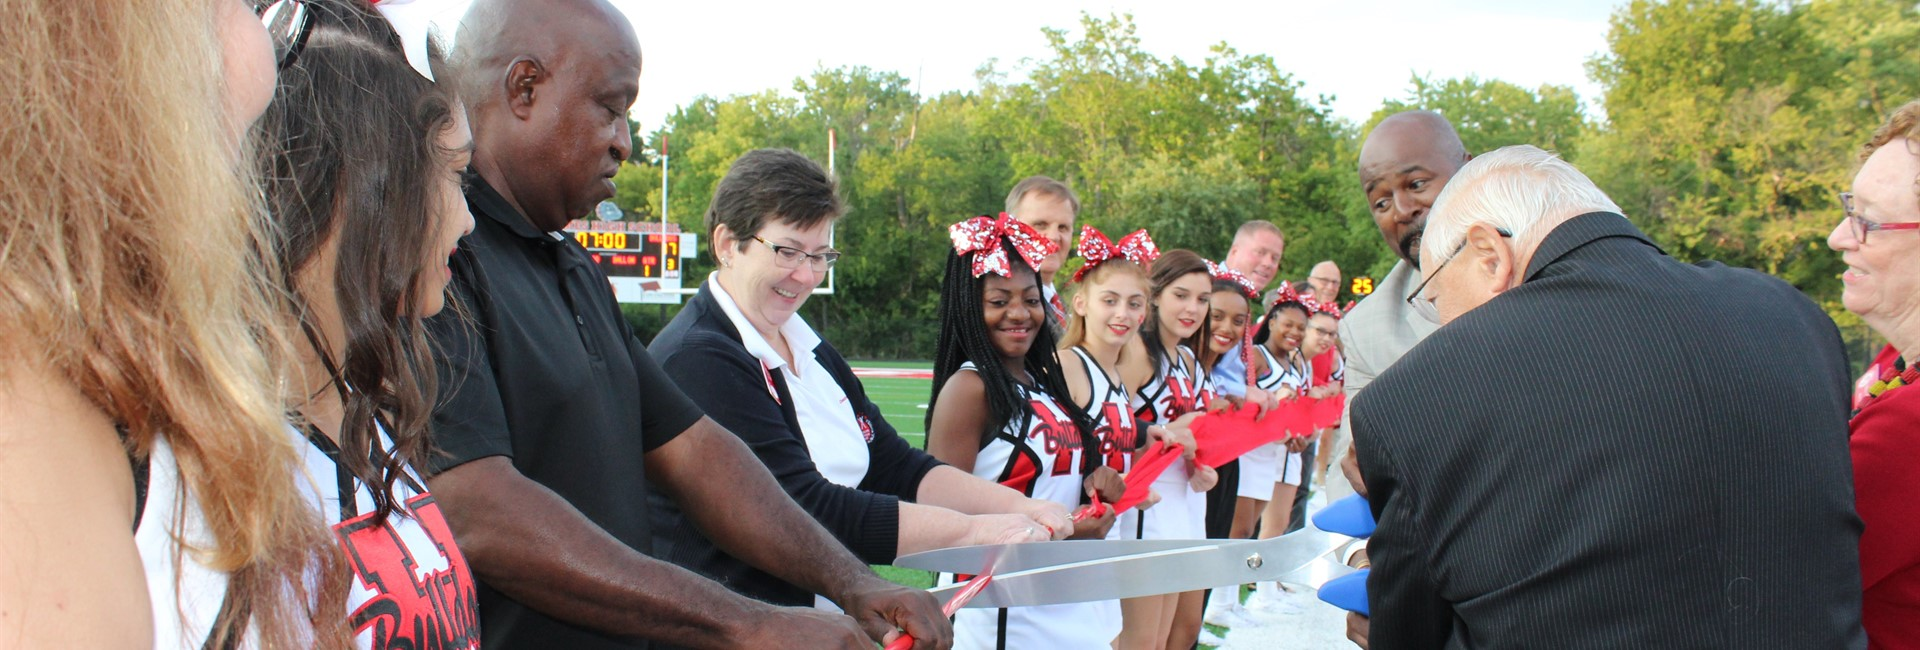 The ribbon is cut to open the new Holmes stadium.